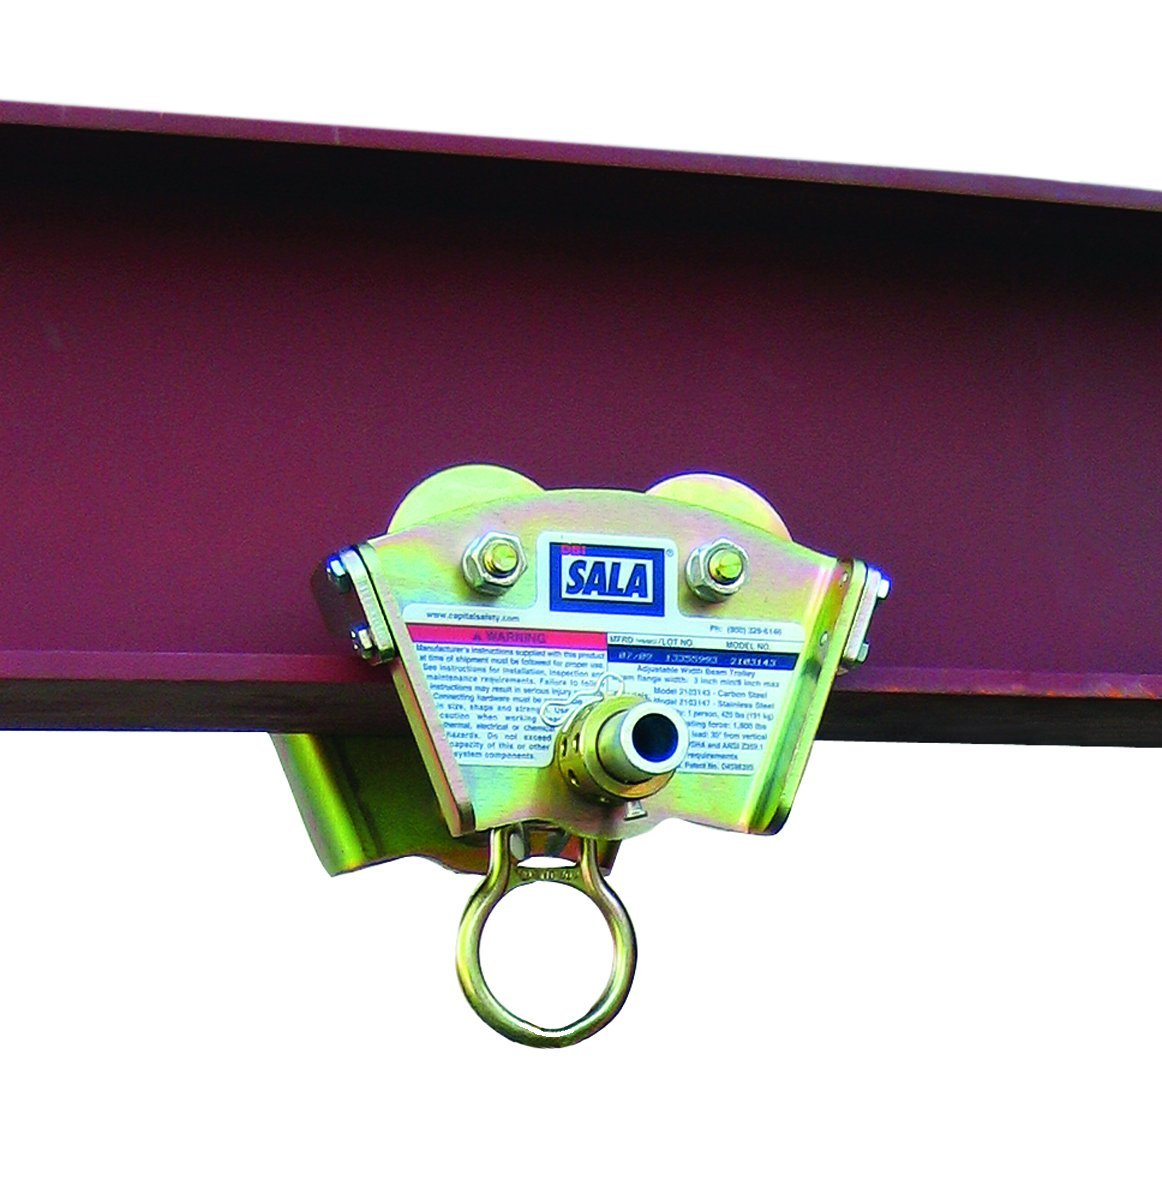 3M DBI-SALA 2103143 Trolley For I-Beam For Use w/Self Retracting Lifeline (Fits Beam Flanges 3''-8'' In Width Up To 11/16'' Thick), Gold by 3M Personal Protective Equipment